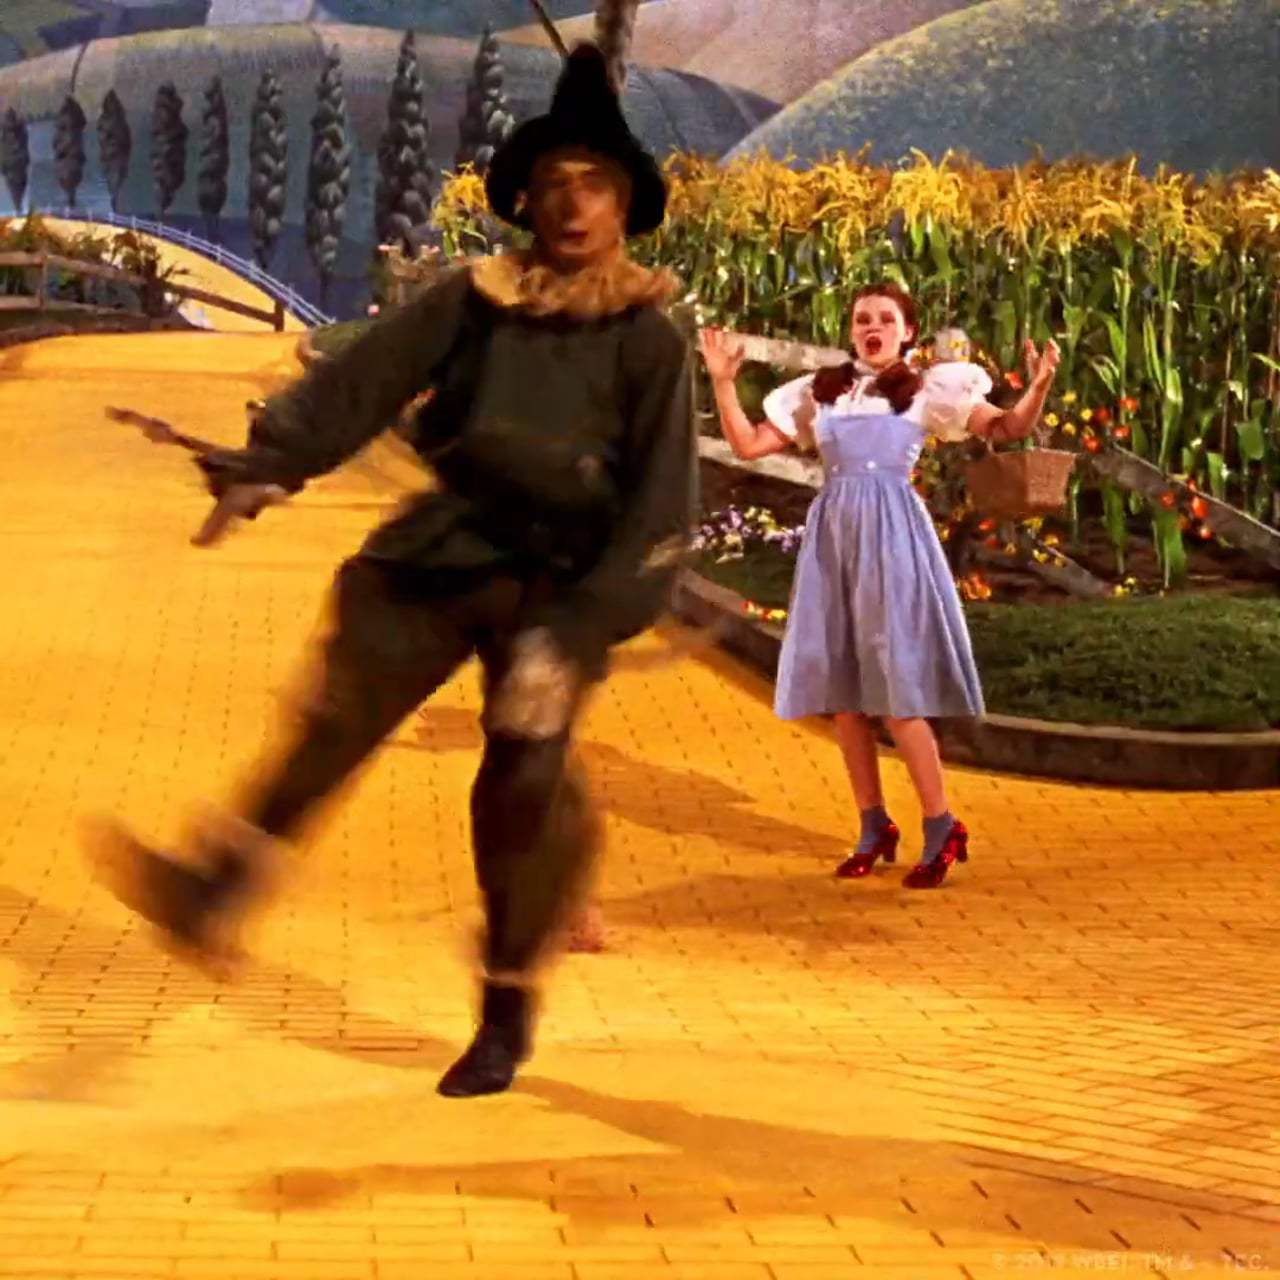 The Wizard Of Oz TV Spot - 4K Announcement (1939) Screen Capture #2